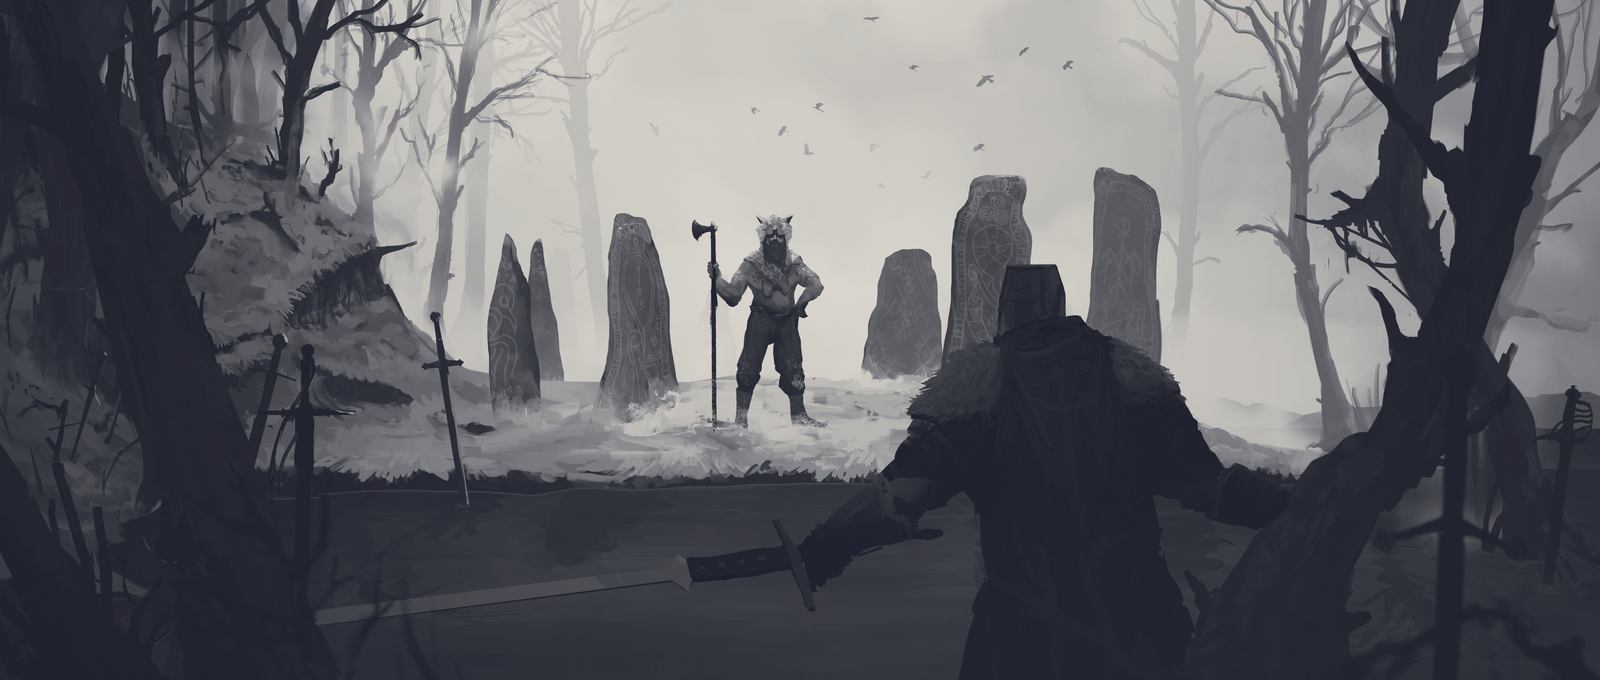 The Confrontation Grayscale by ranits123